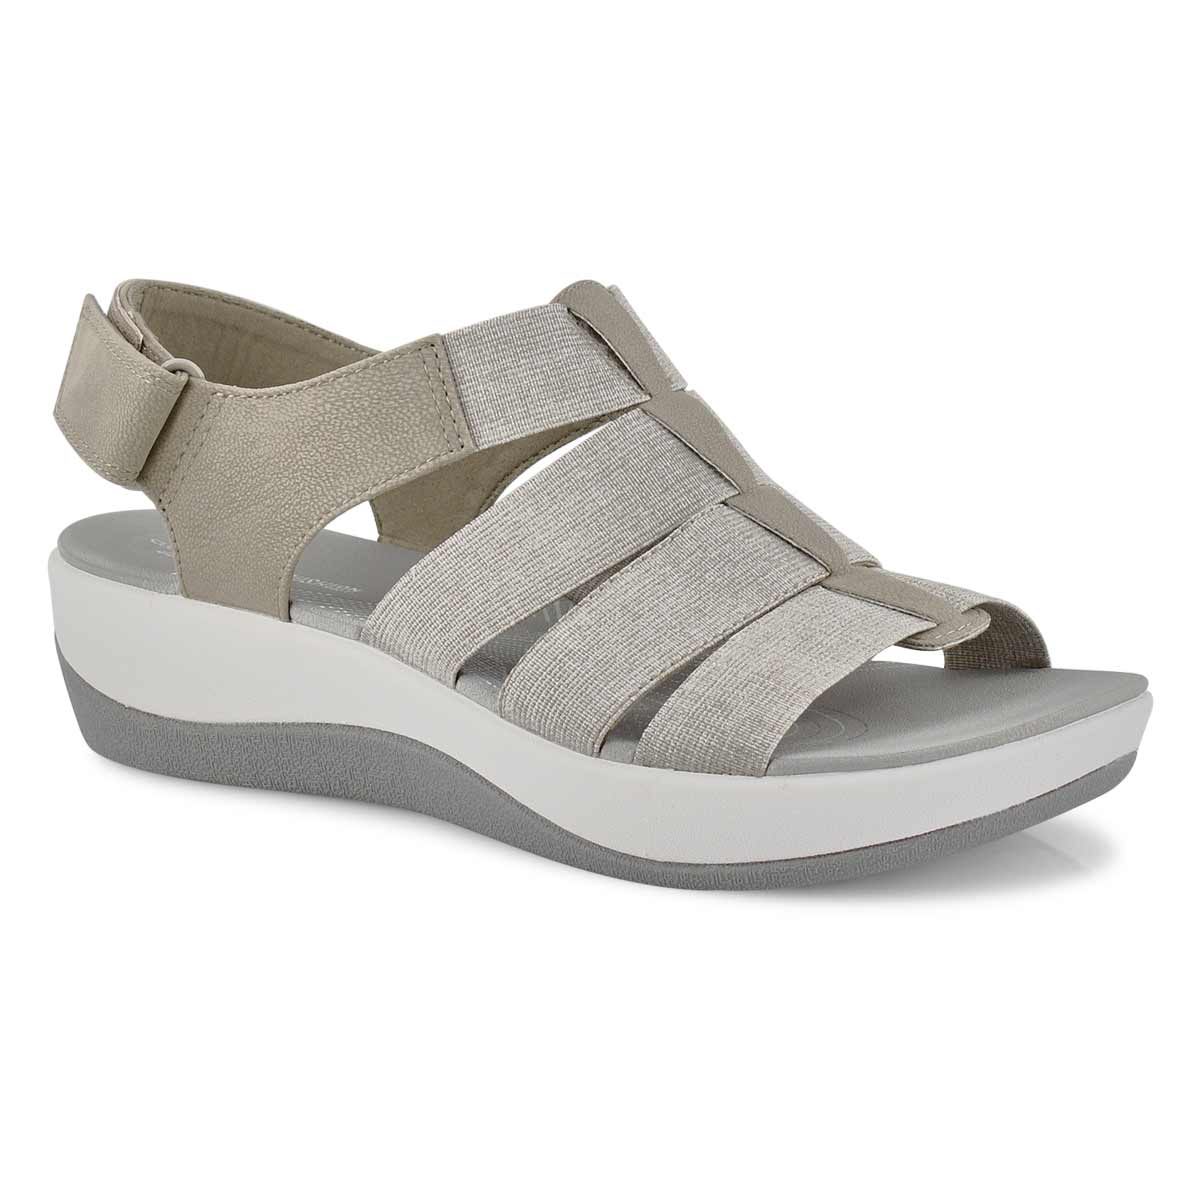 Women's Arla Shaylie Casual Wedge Sandal - Sand